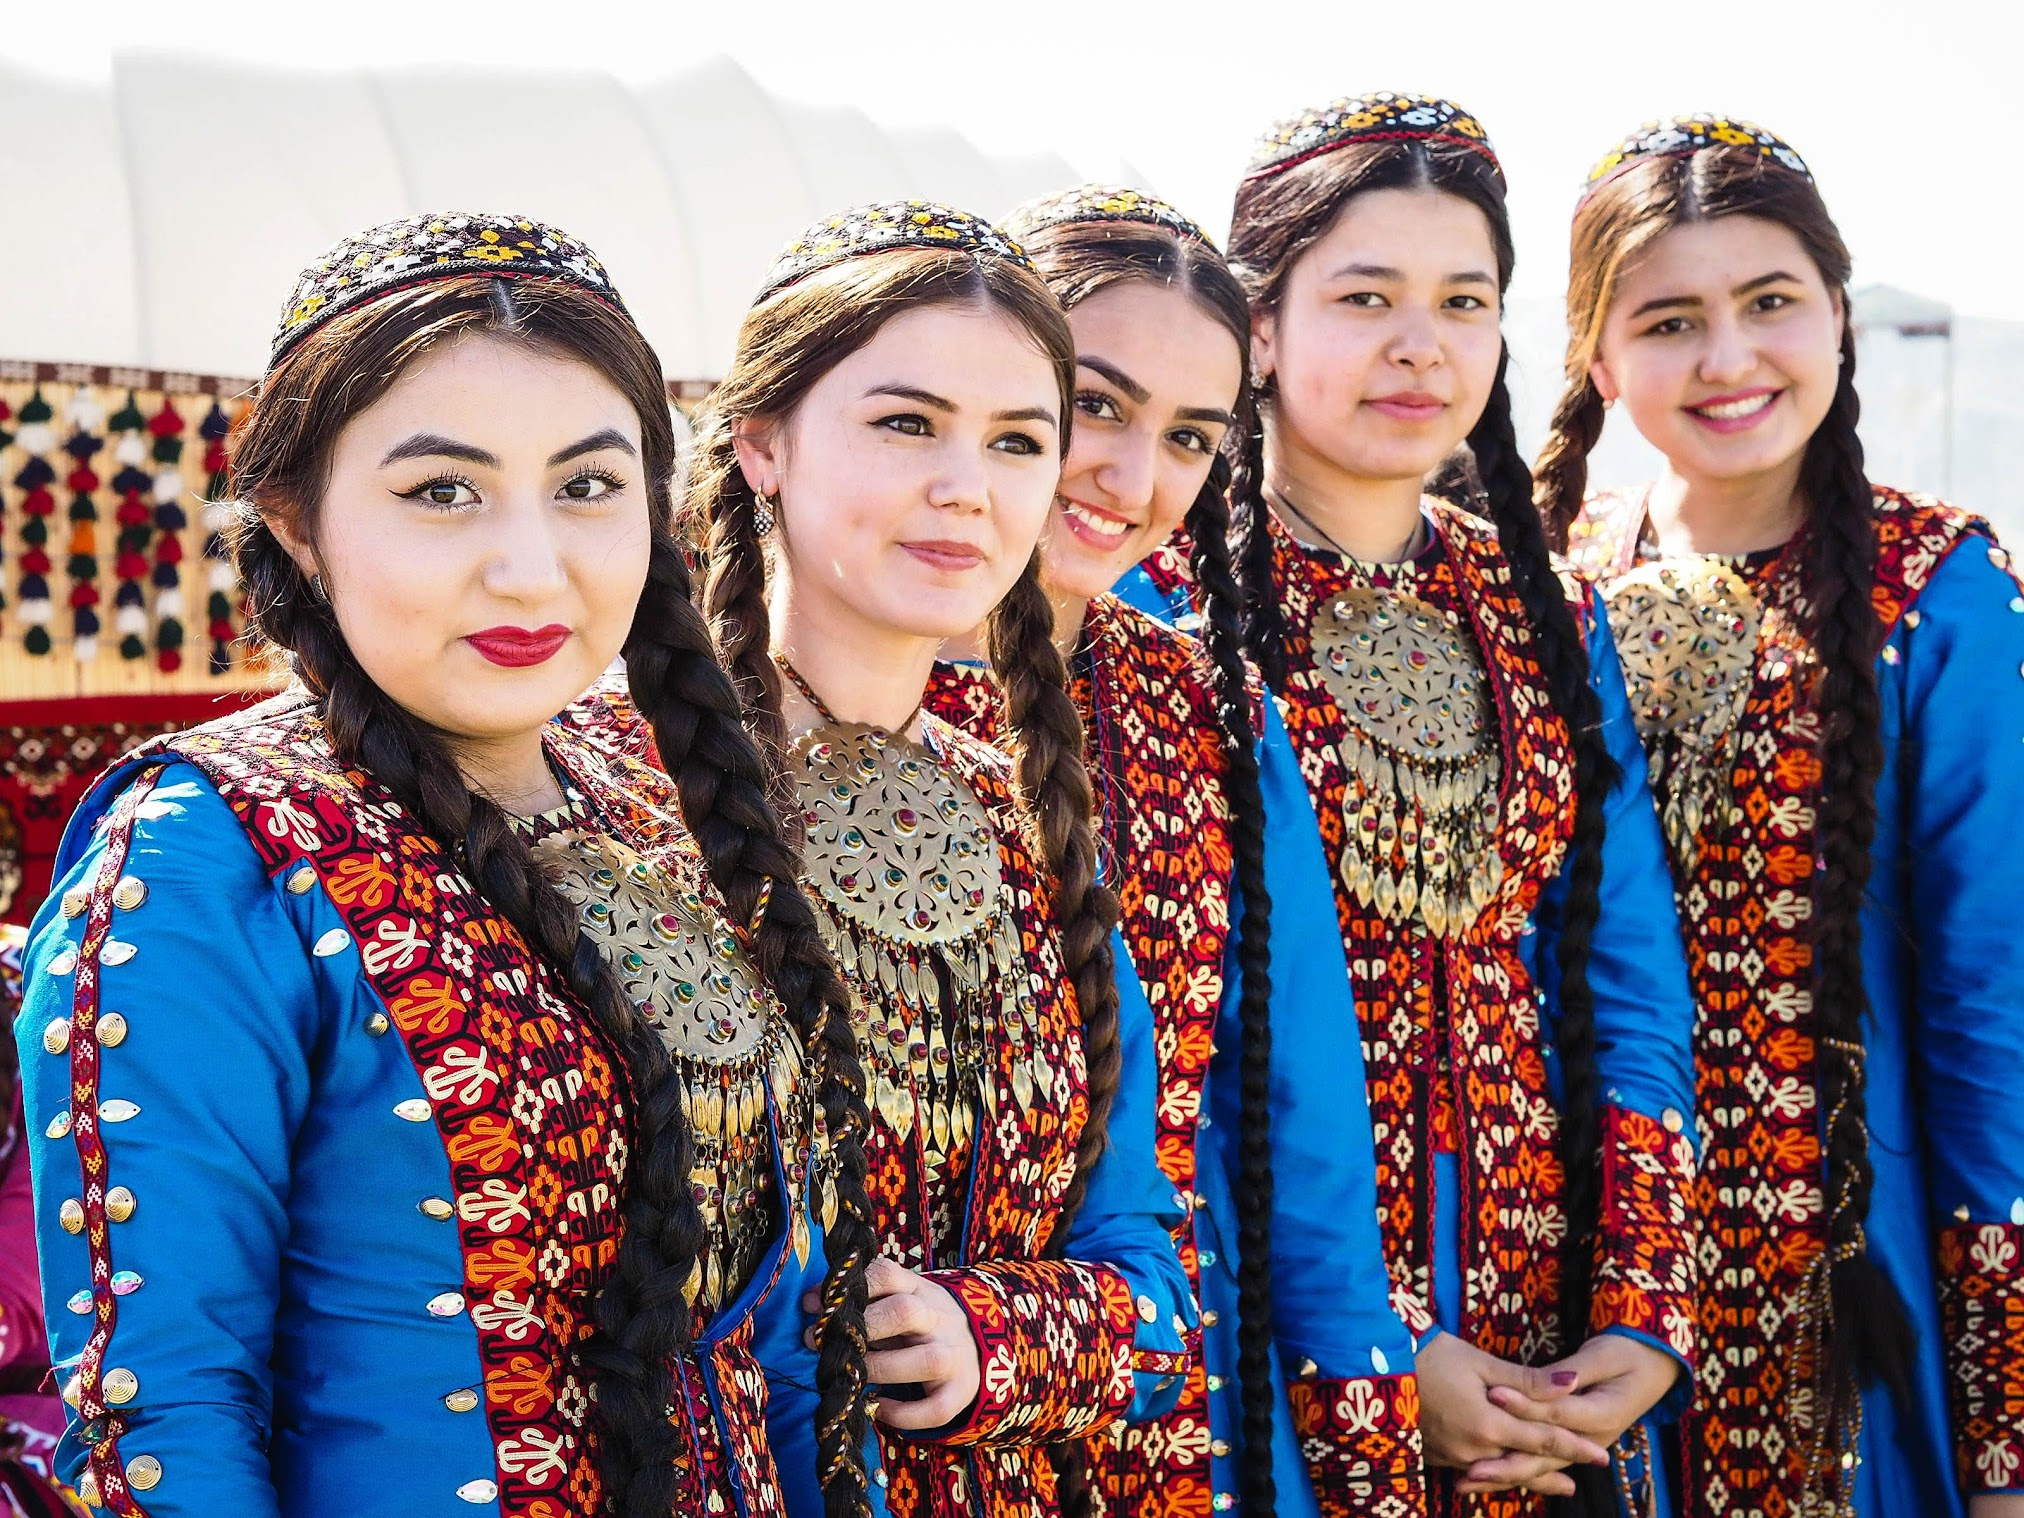 Colorful and beautiful ladies of Turkmenistan